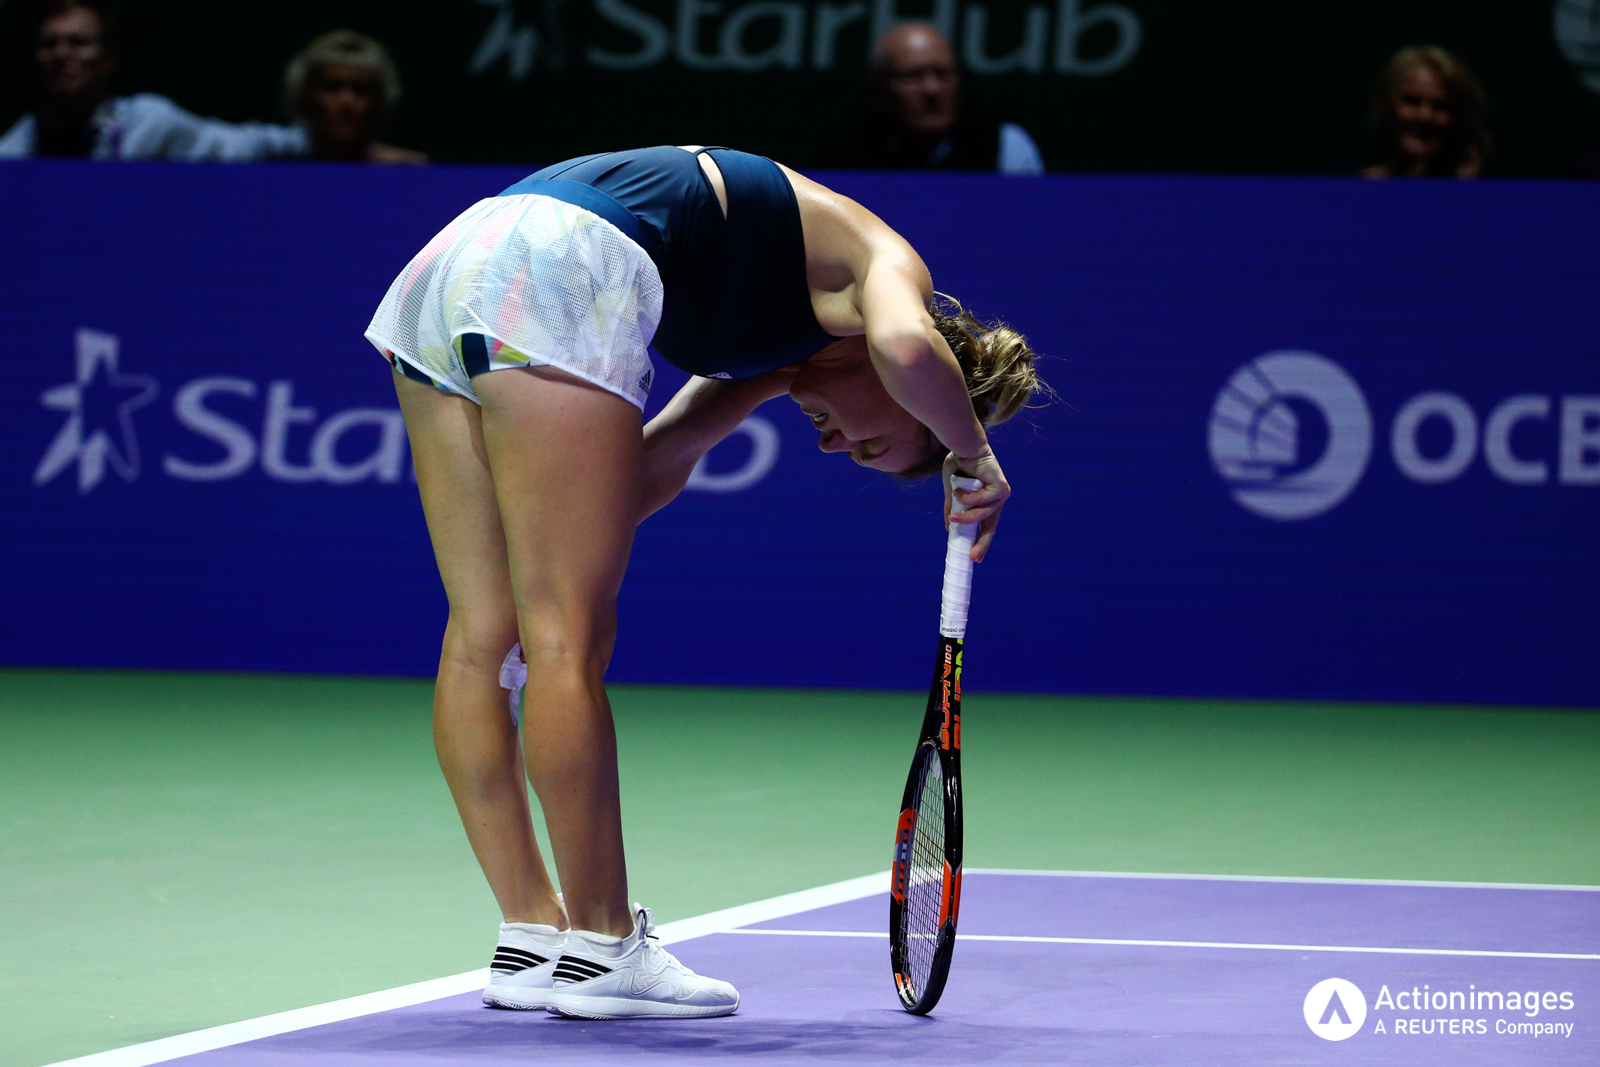 Tennis - BNP Paribas WTA Finals - Singapore Indoor Stadium - 27/10/16 Romania's Simona Halep clutches her left knee during her round robin match Mandatory Credit: Action Images / Yong Teck Lim Livepic